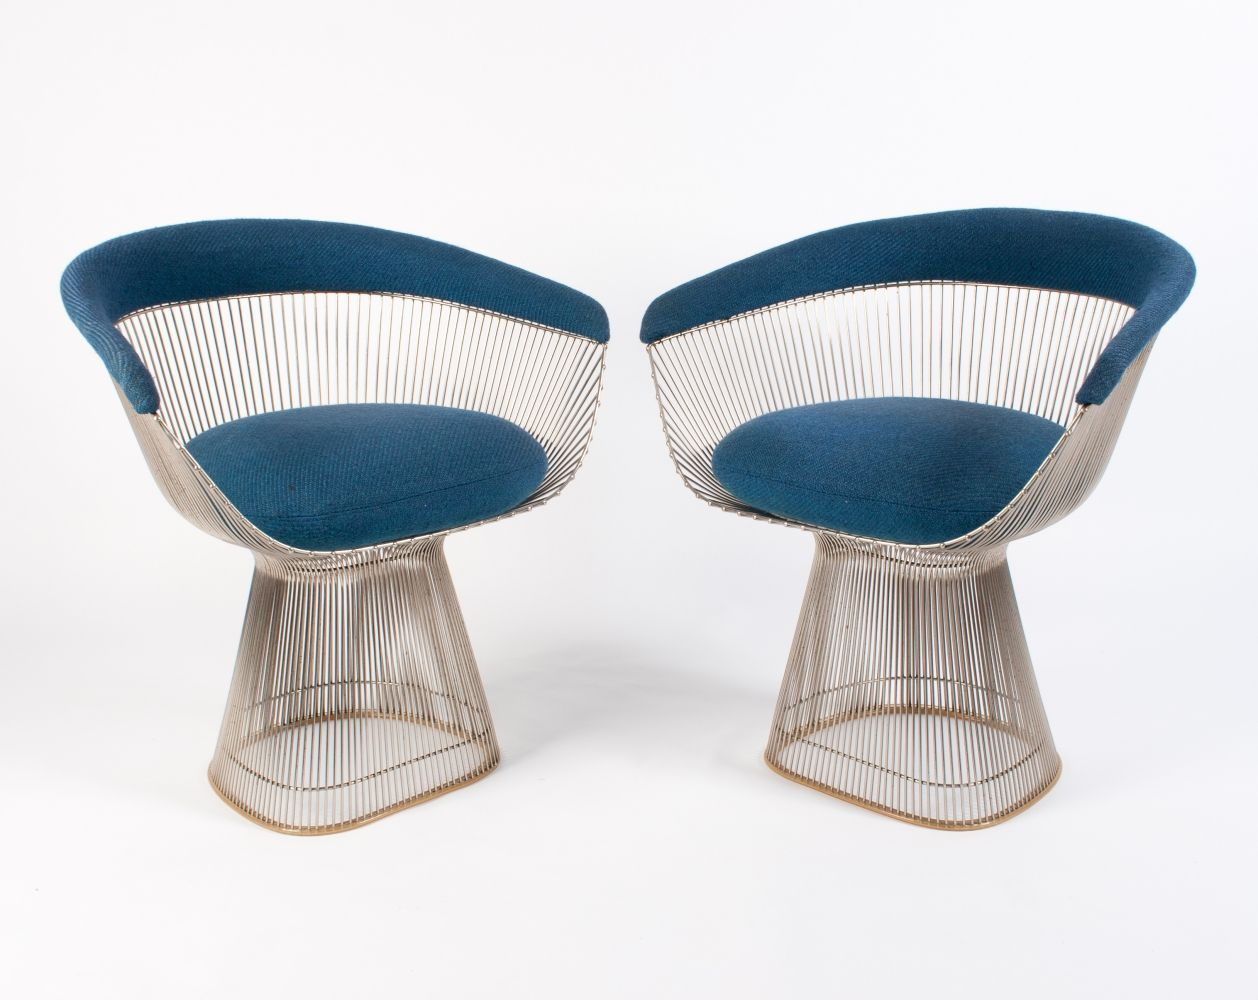 Awe Inspiring 2X Vintage Warren Platner Arm Chair In Blue Wool 1960S Gamerscity Chair Design For Home Gamerscityorg